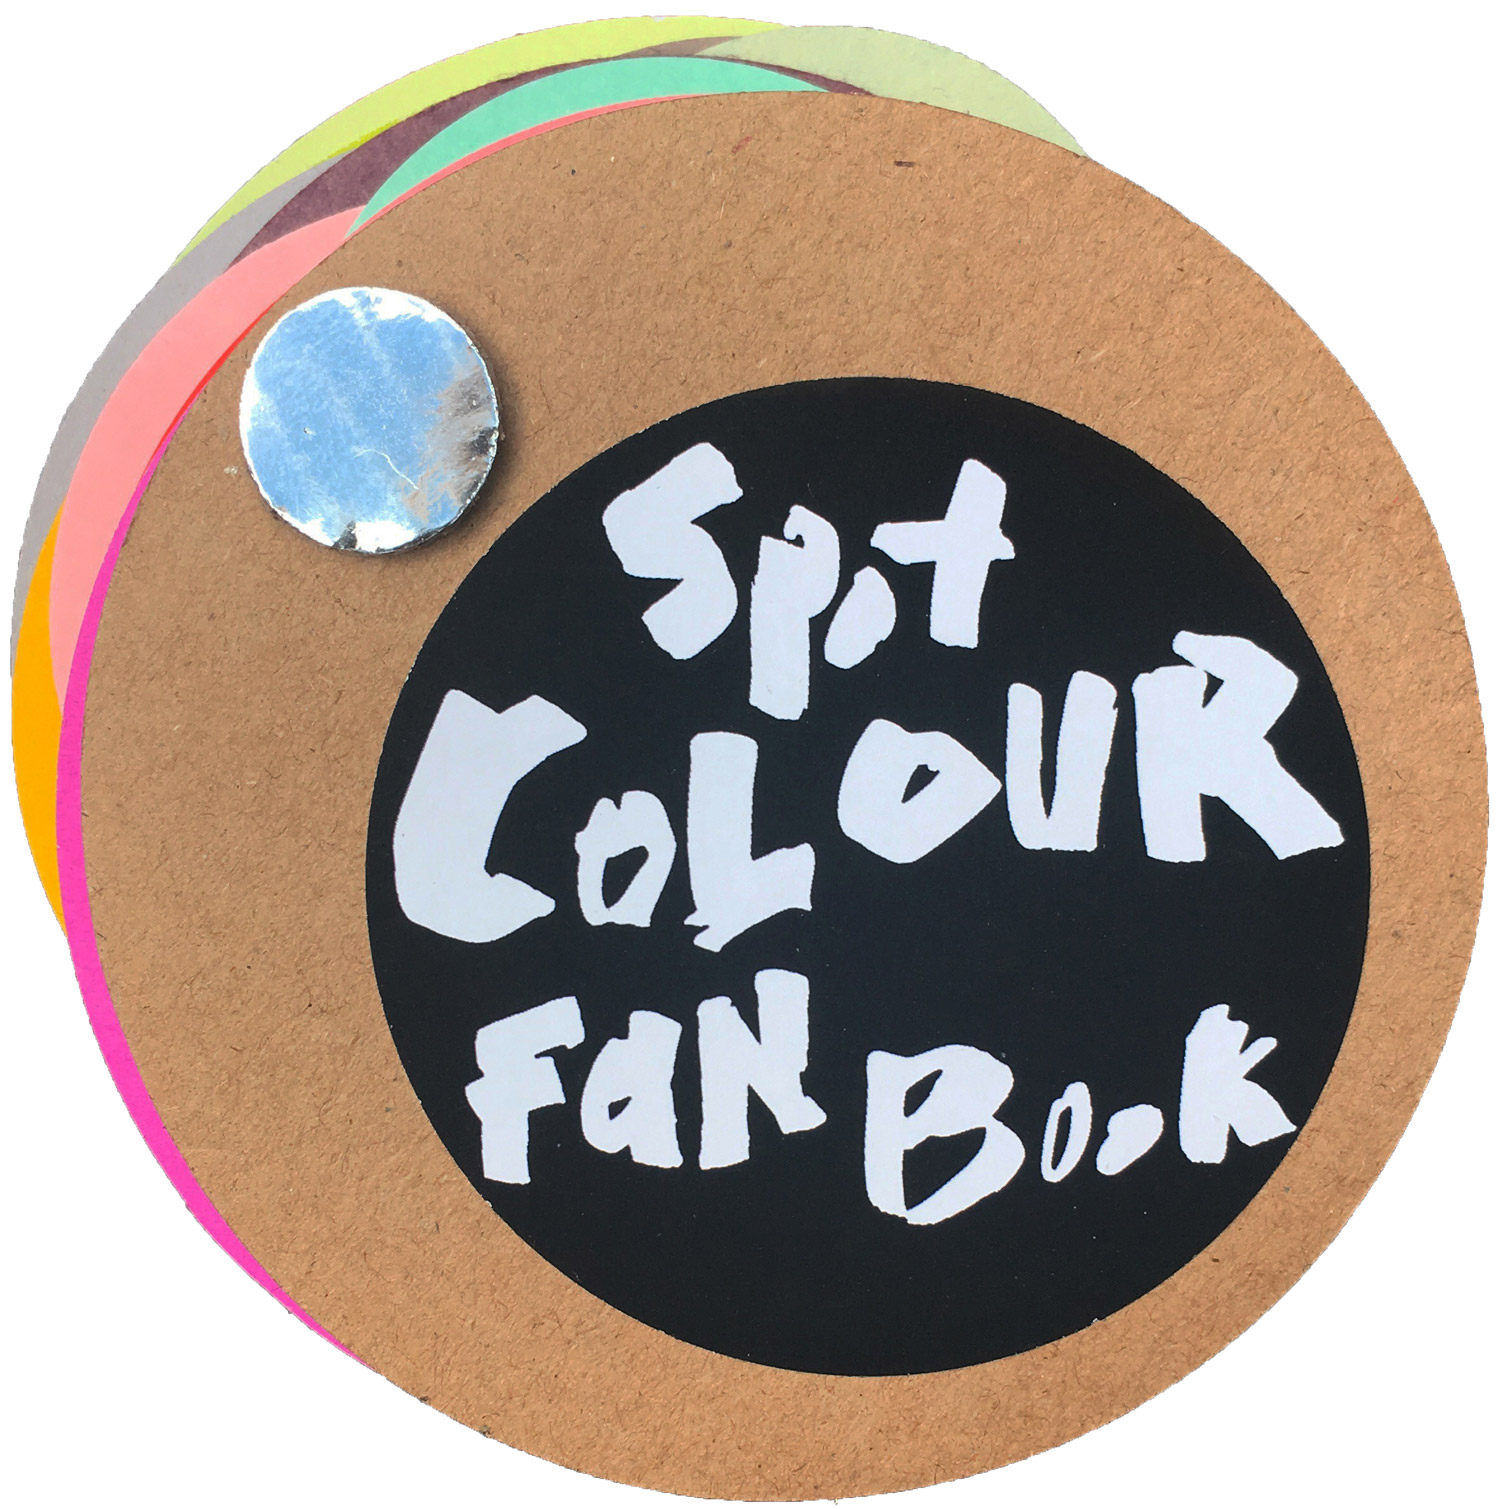 Spot Colour Fan Book © Margot Fagan